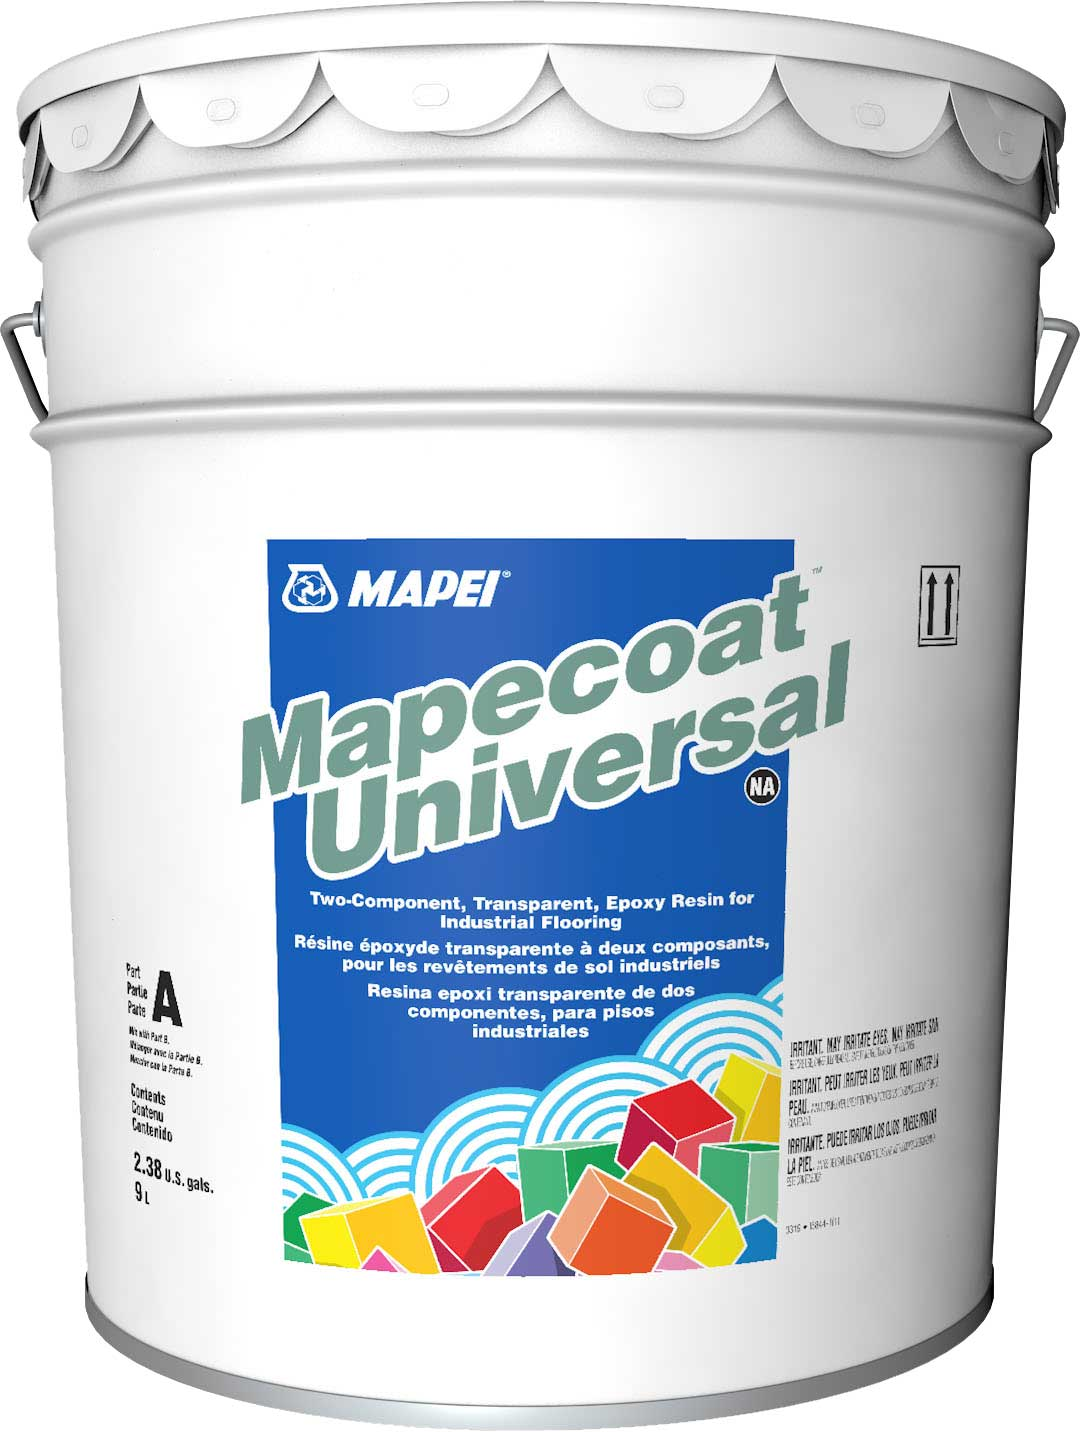 Mapecoat™ Universal: An effective solution for industrial flooring needs